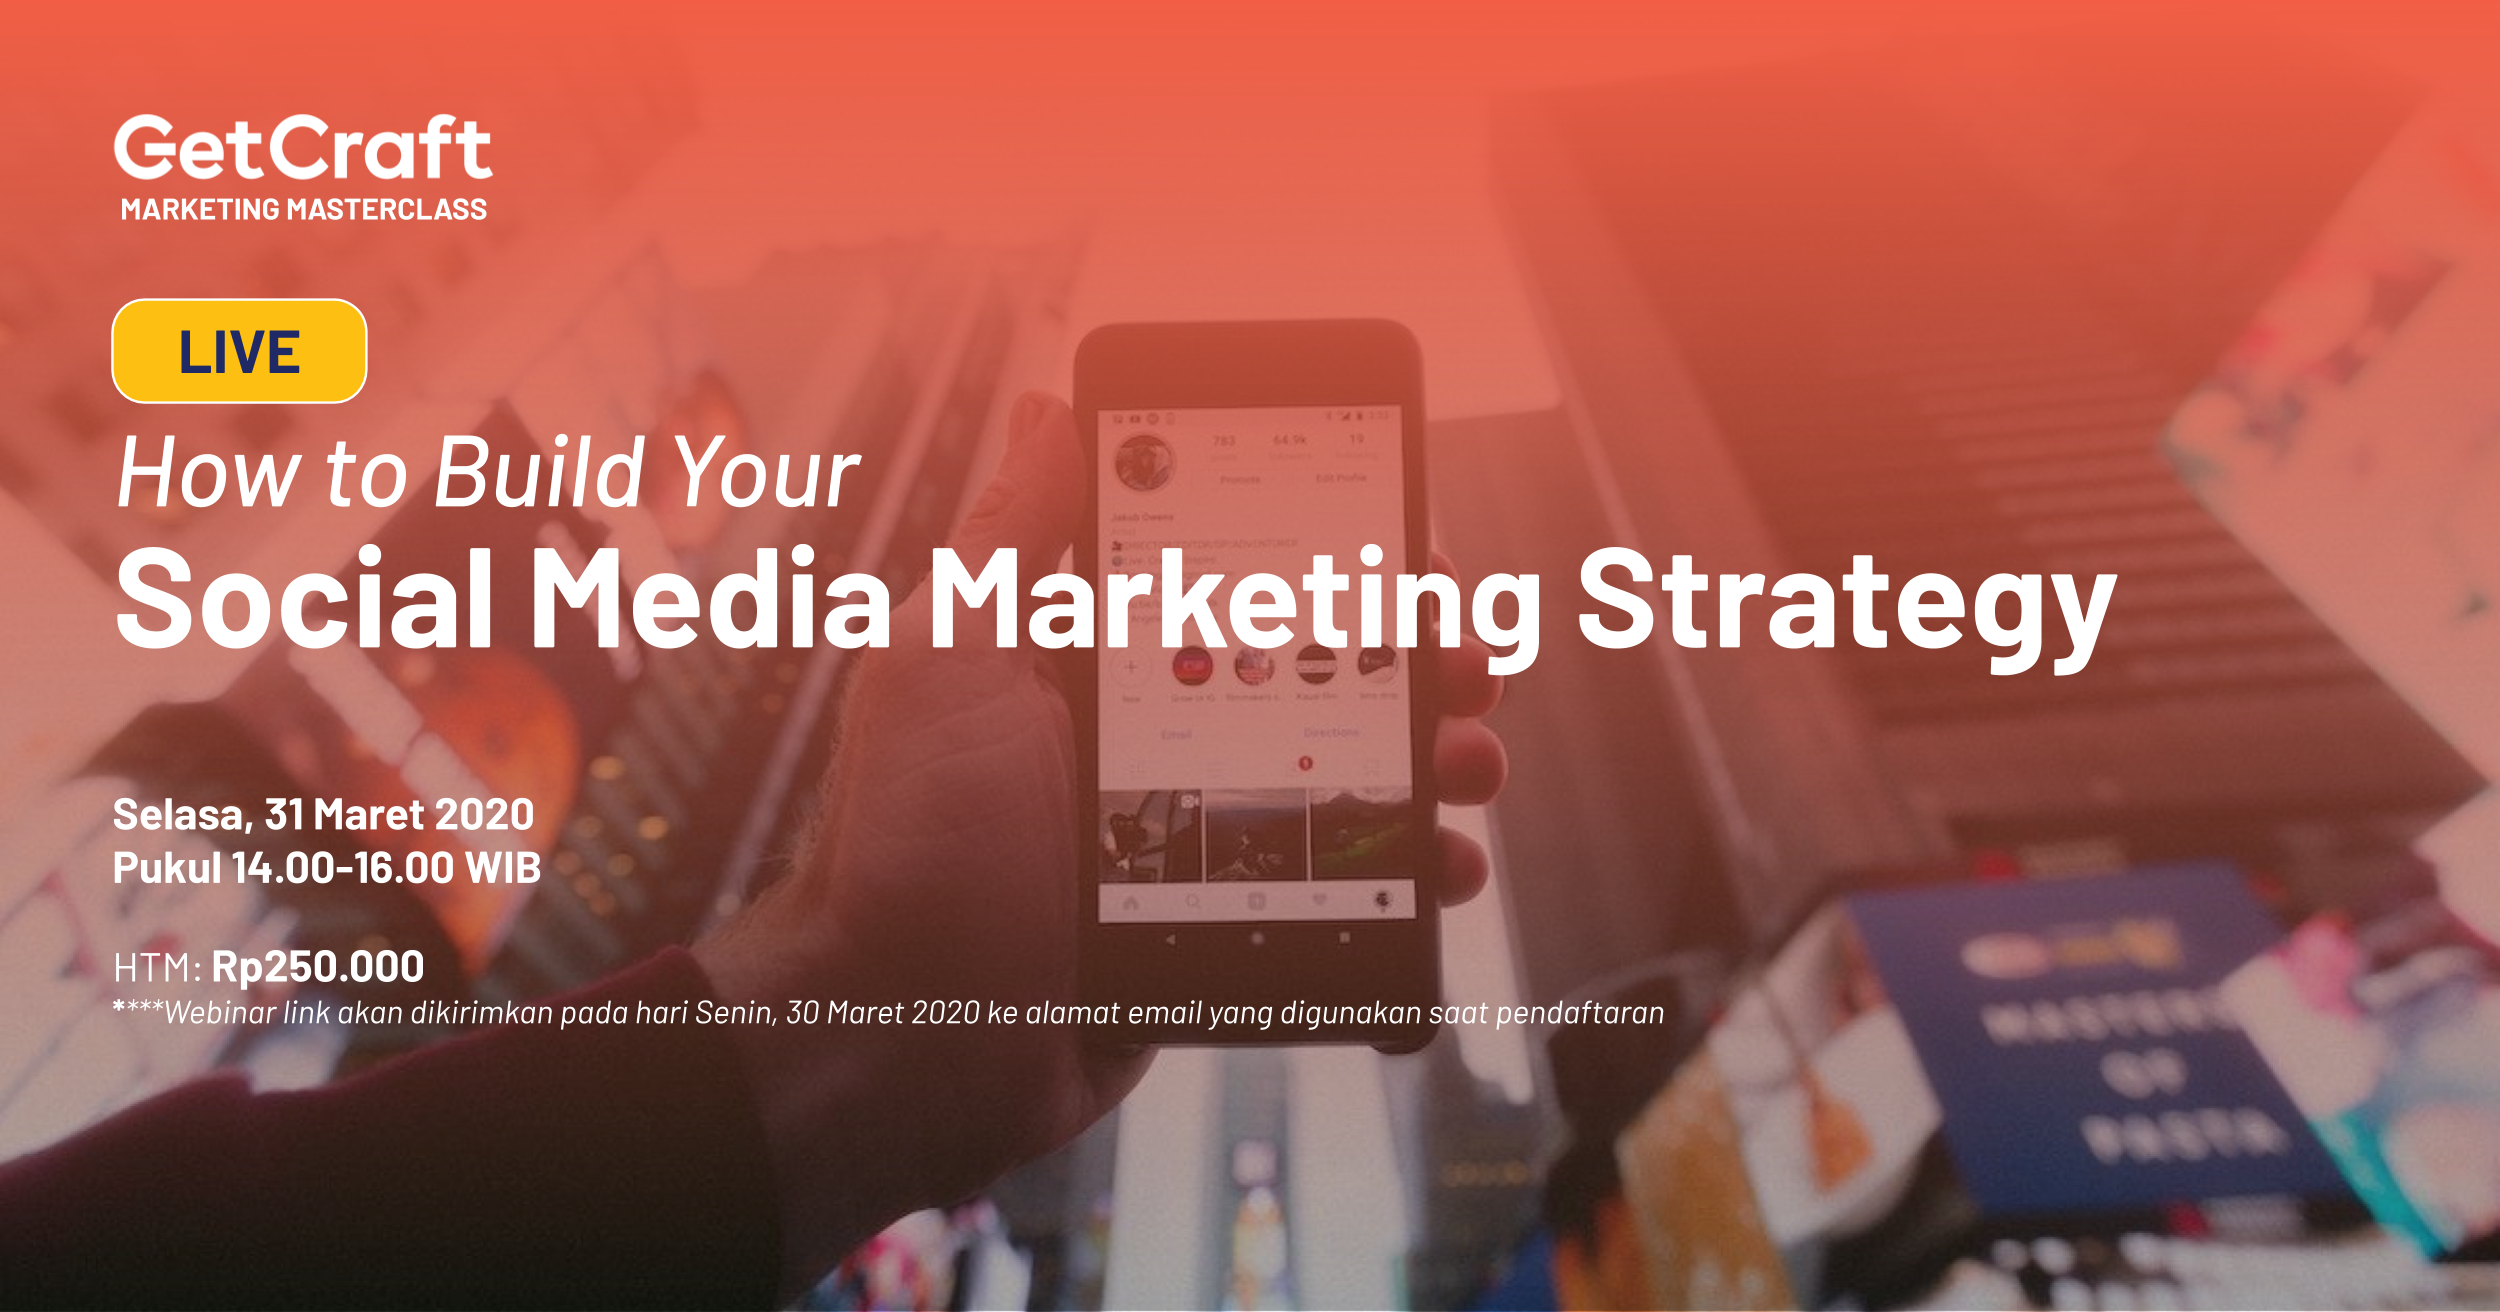 [Upcoming Online Training] How to Build Your Social Media Marketing Strategy